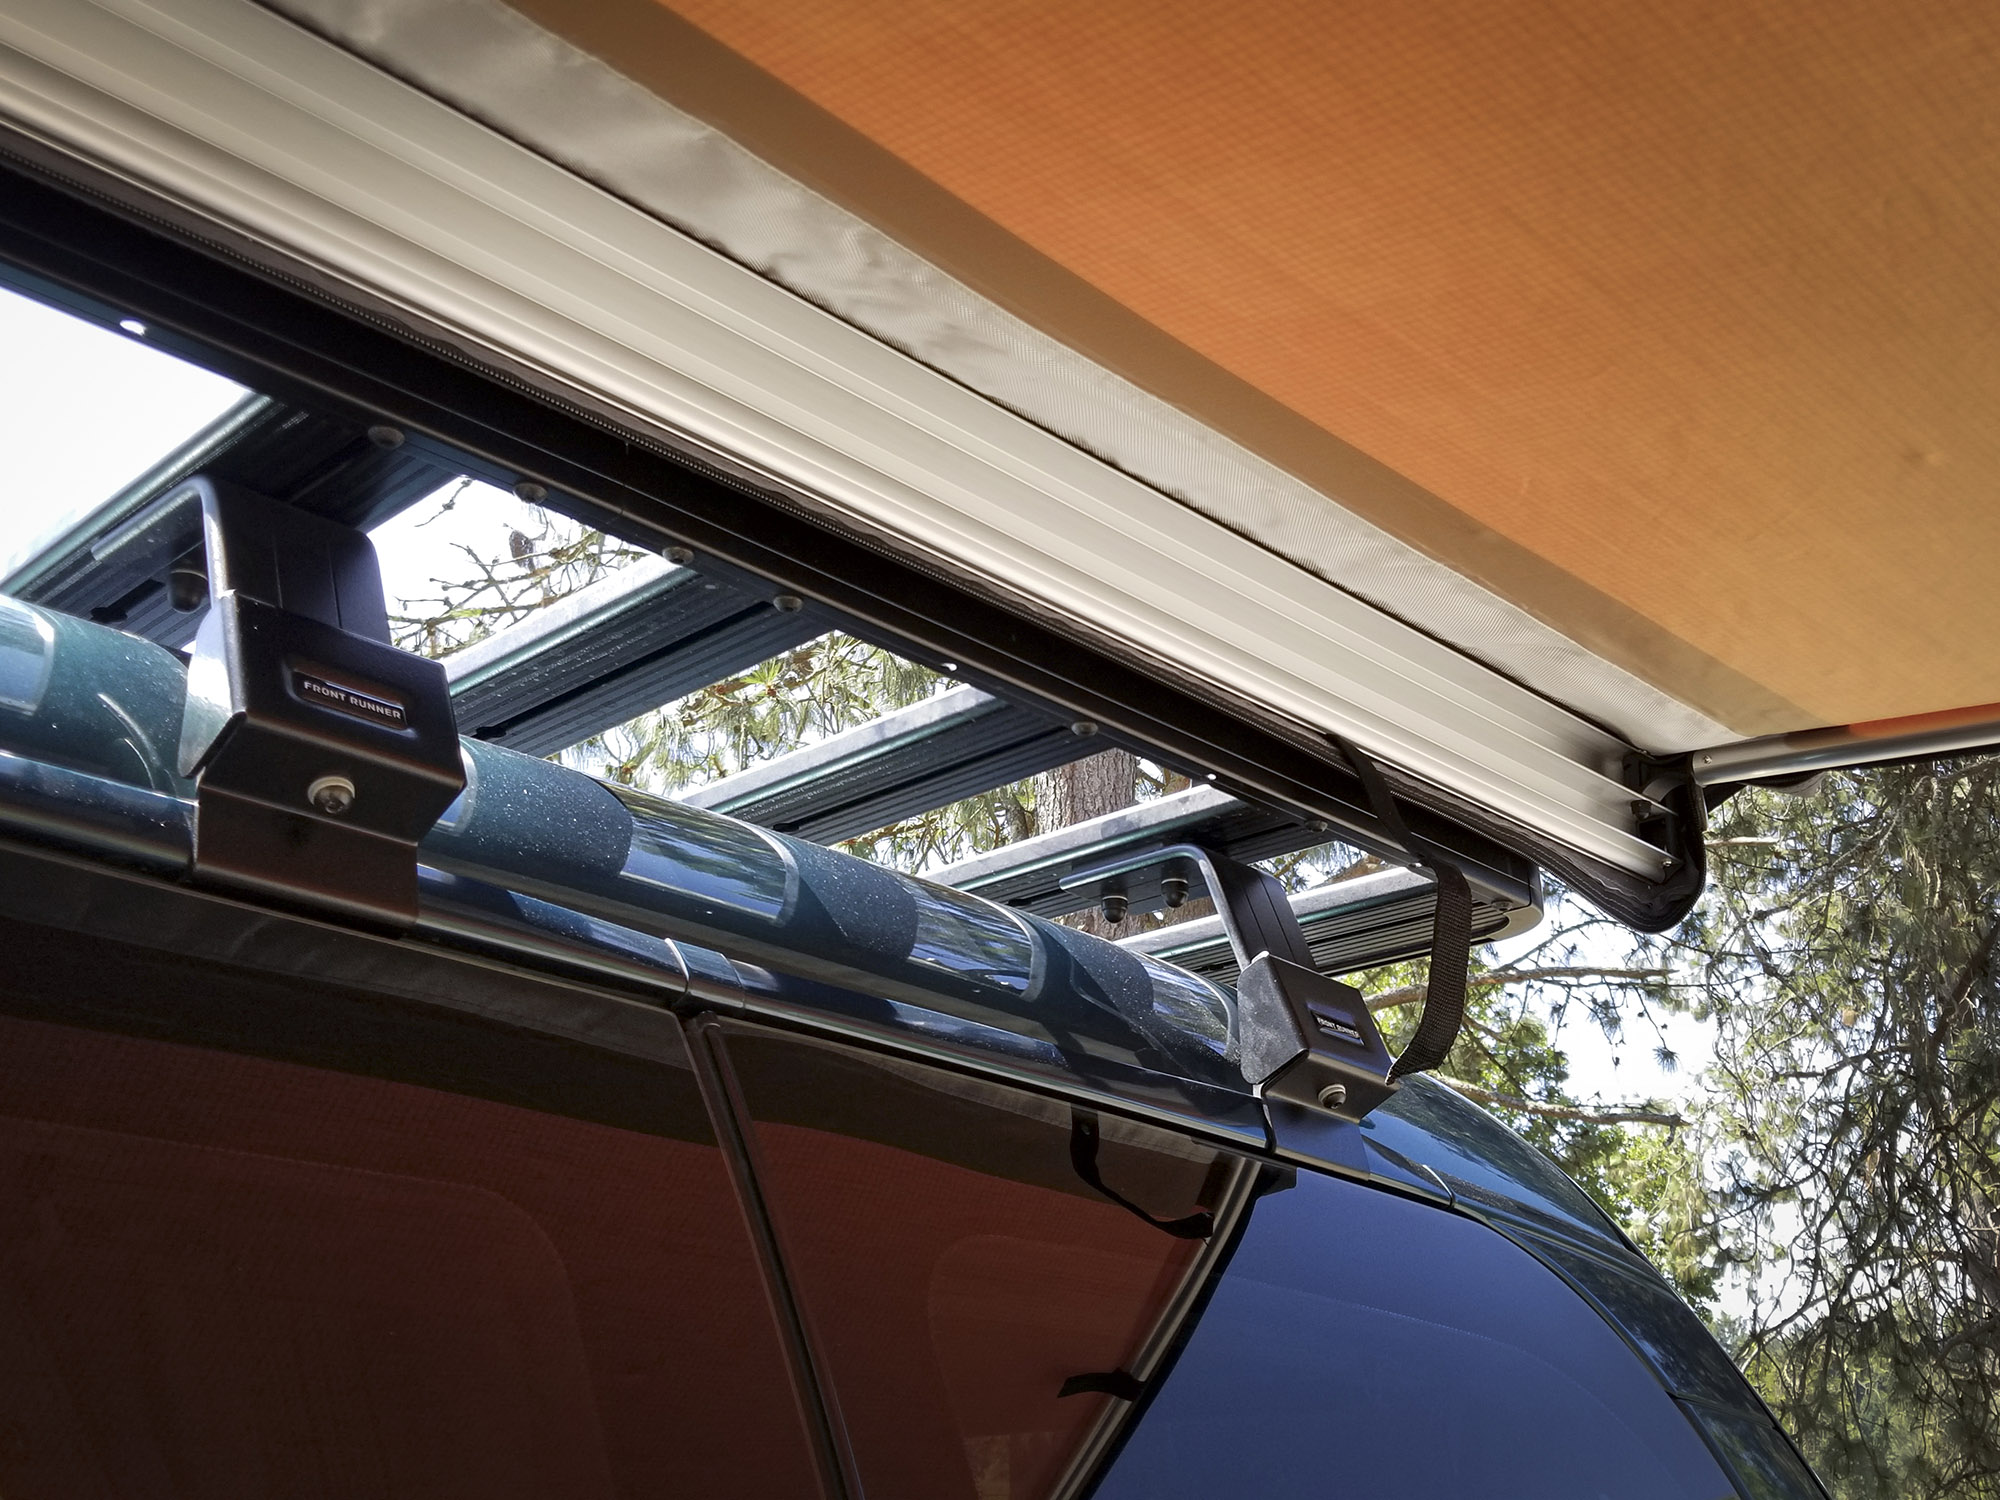 The awning housing features an aluminum chase for support poles and a waterproof zippered bag.